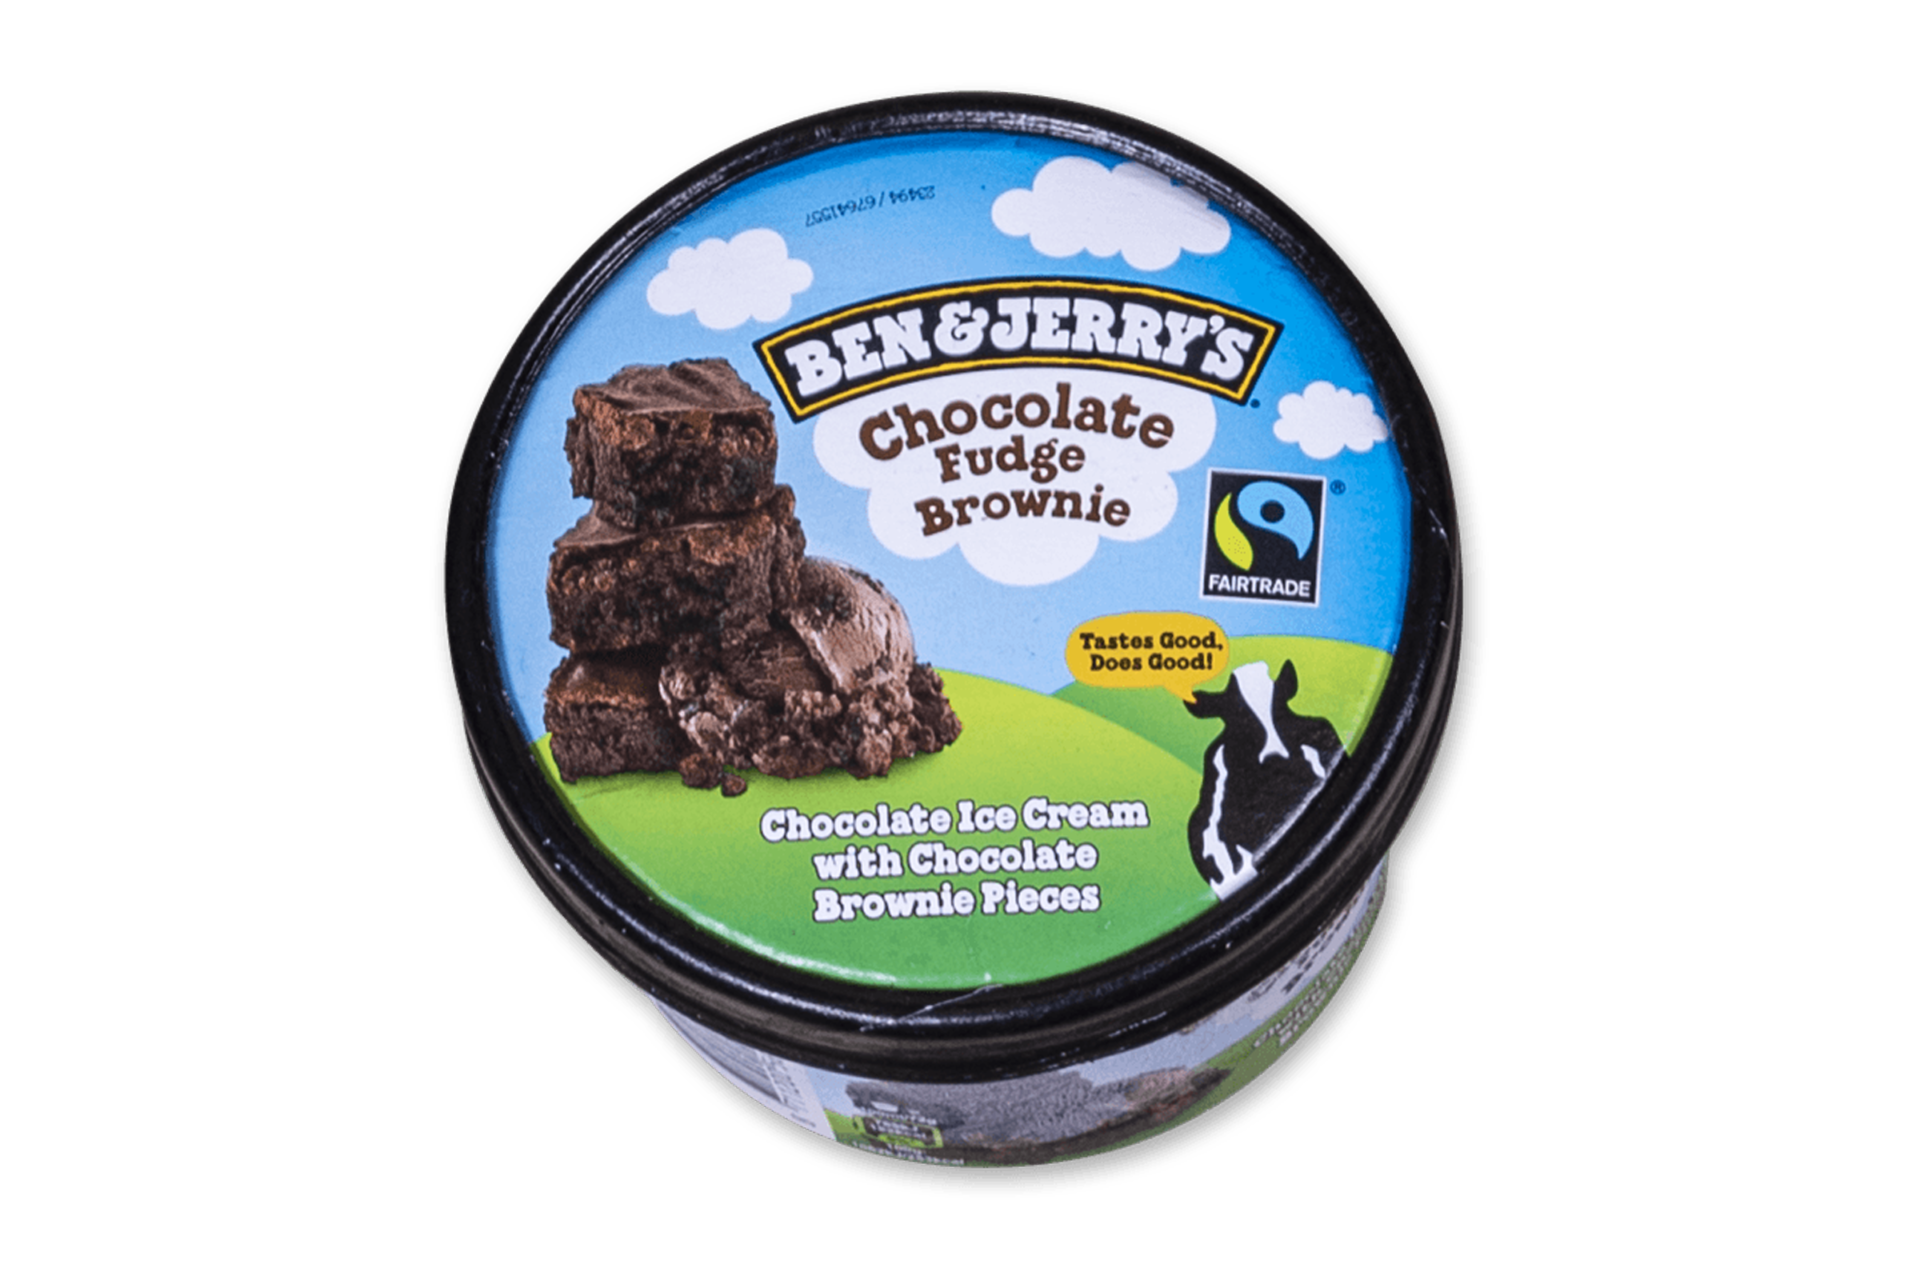 Ben & Jerry's Chocolate Fudge 1